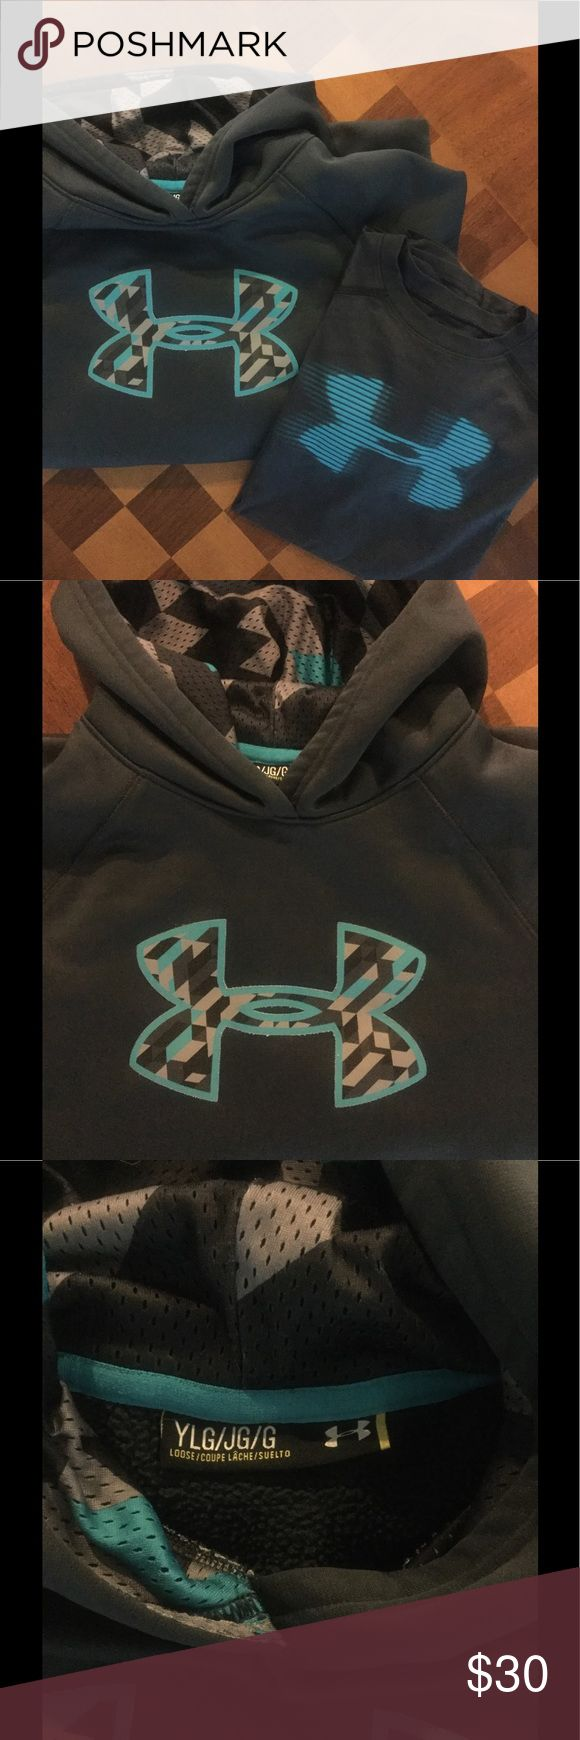 Under Armour hoodie and tshirt set Hoodie is YL black with turquoise & gray logo, tshirt is YM black with turquoise logo Under Armour Shirts & Tops